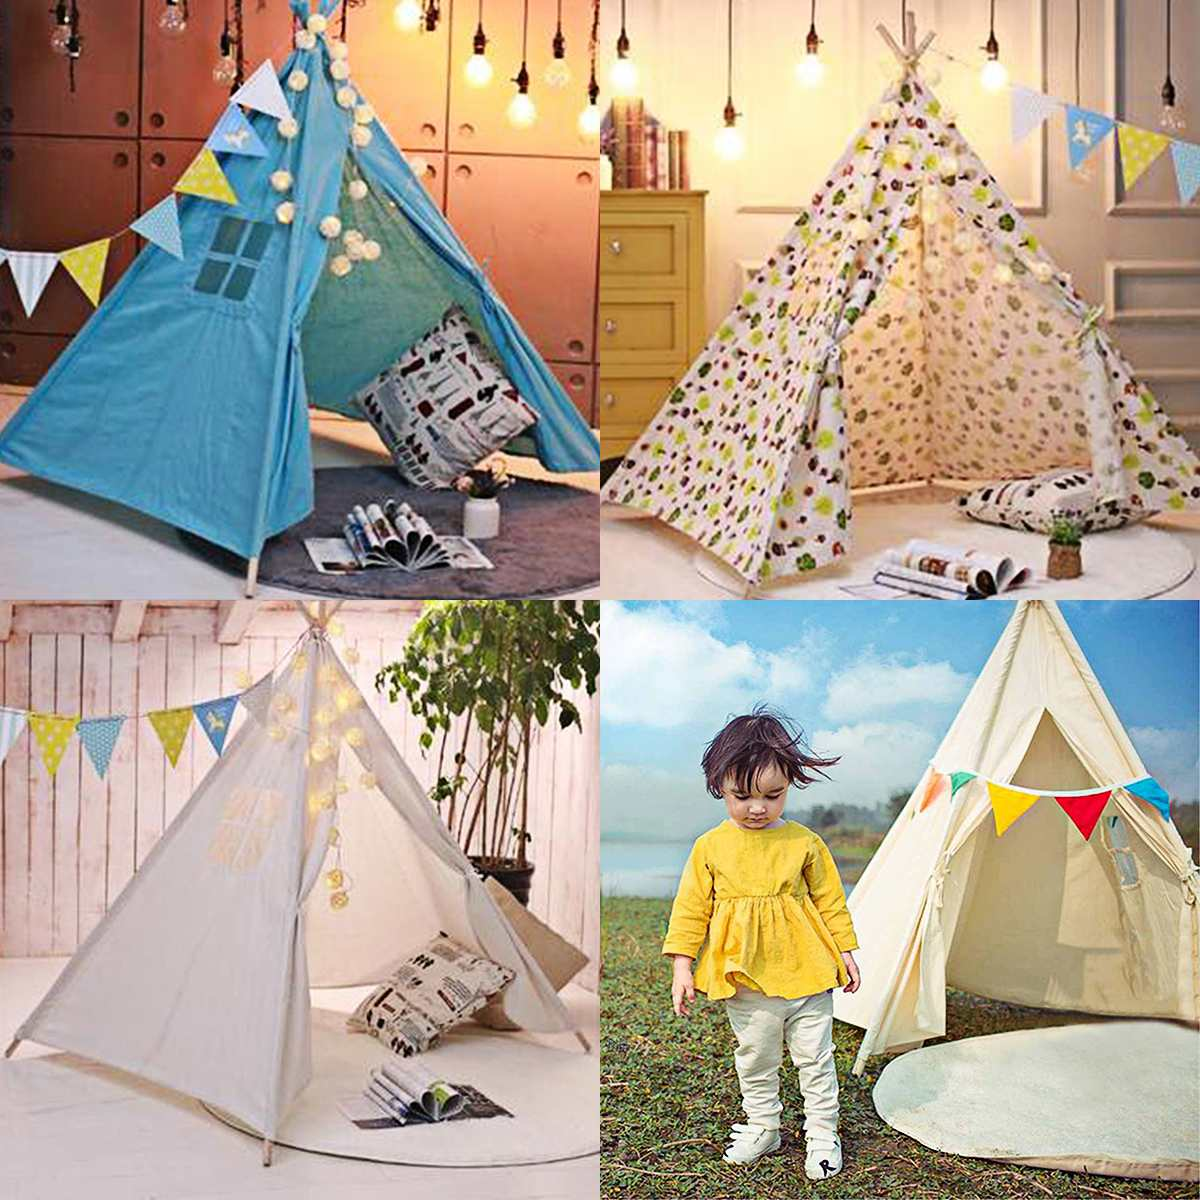 130cm/160cm/180cm Teepee Large Cotton Linen Kids Teepee Canvas Playhouse Indian Play Tent House White Children Tipi Tee Pee Tent